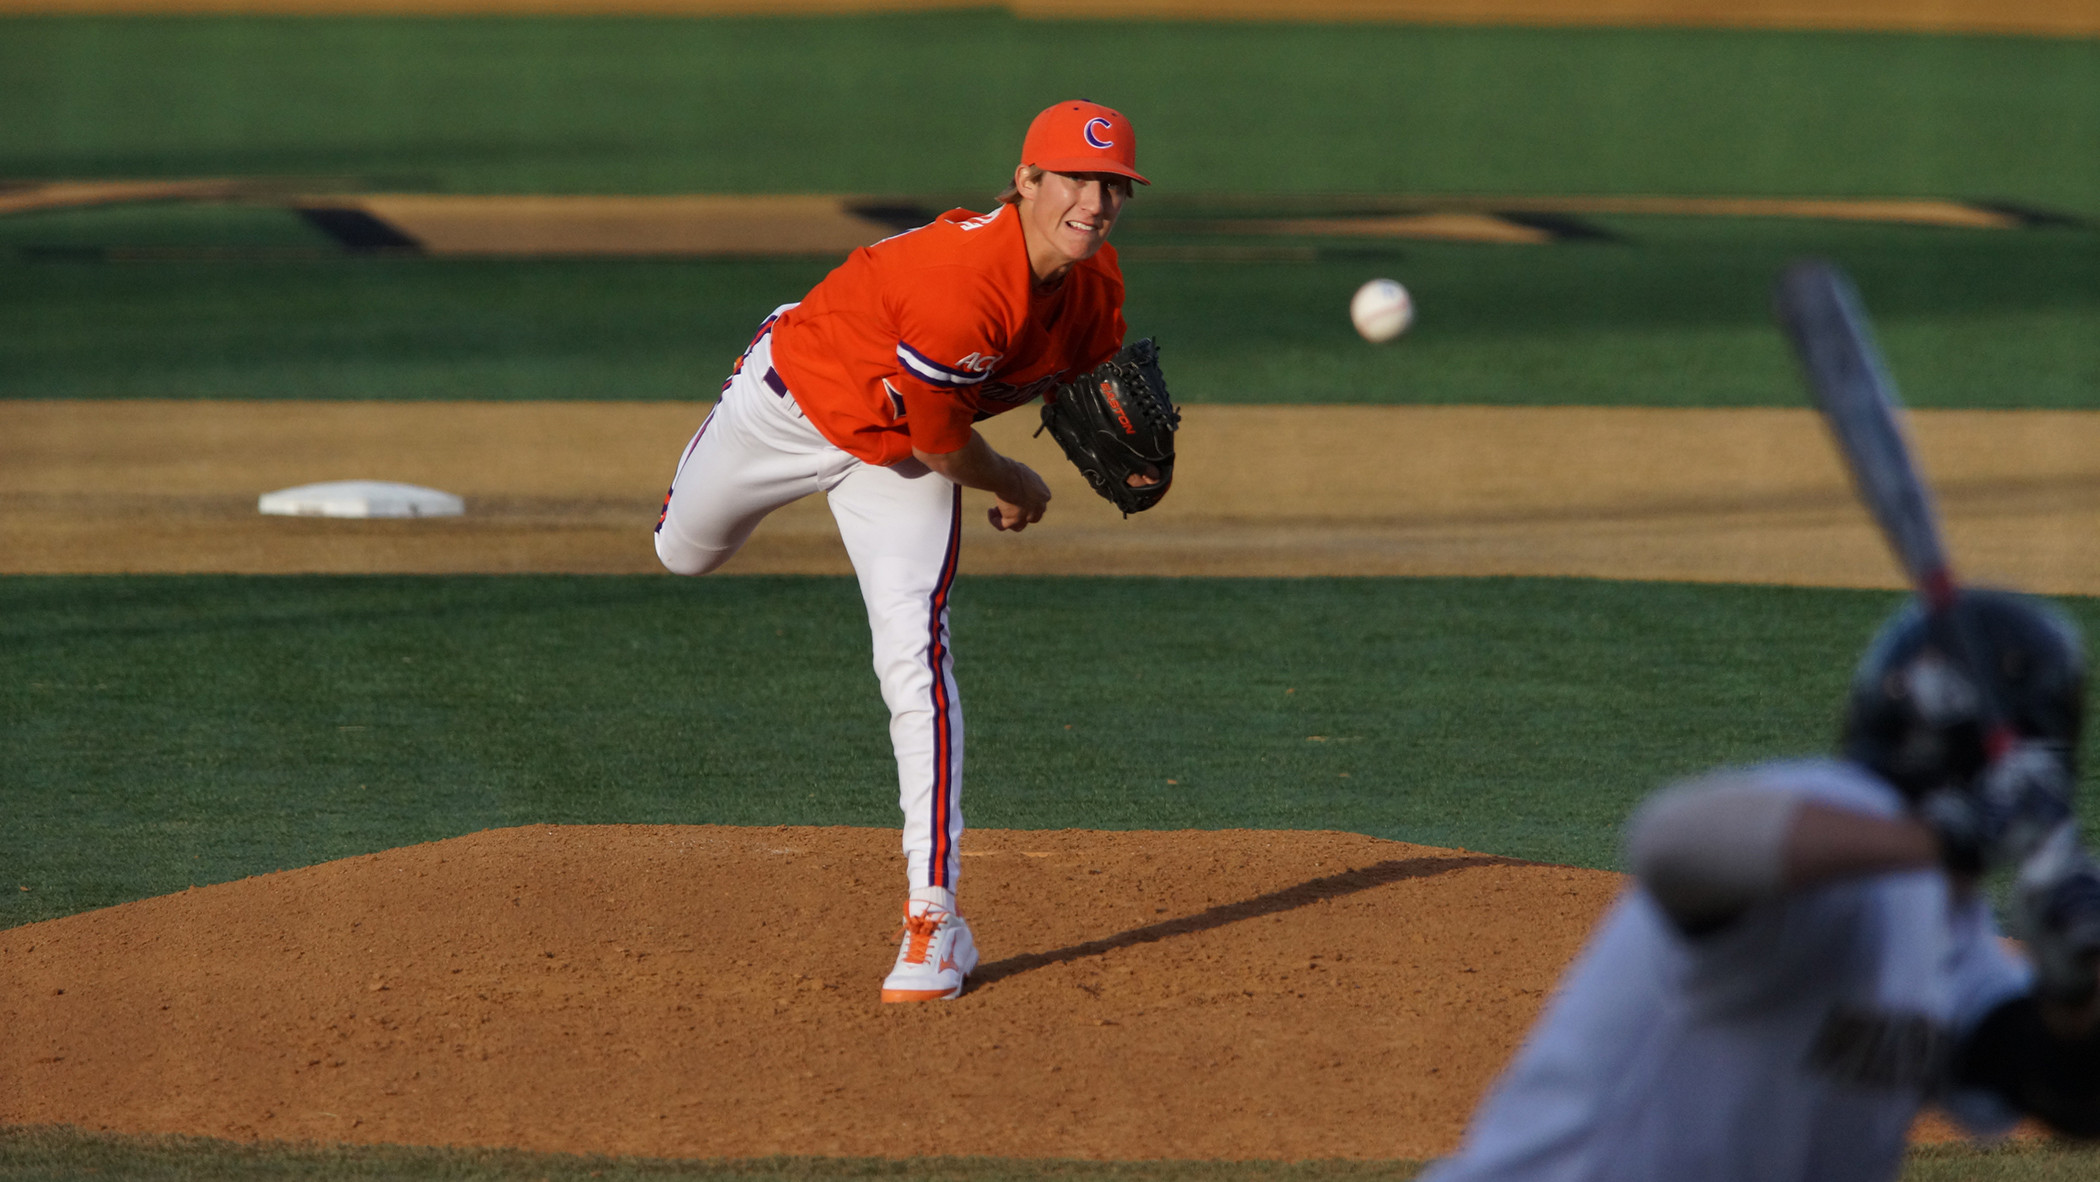 Demon Deacons Rally Late to Top No. 14 Tigers 4-3